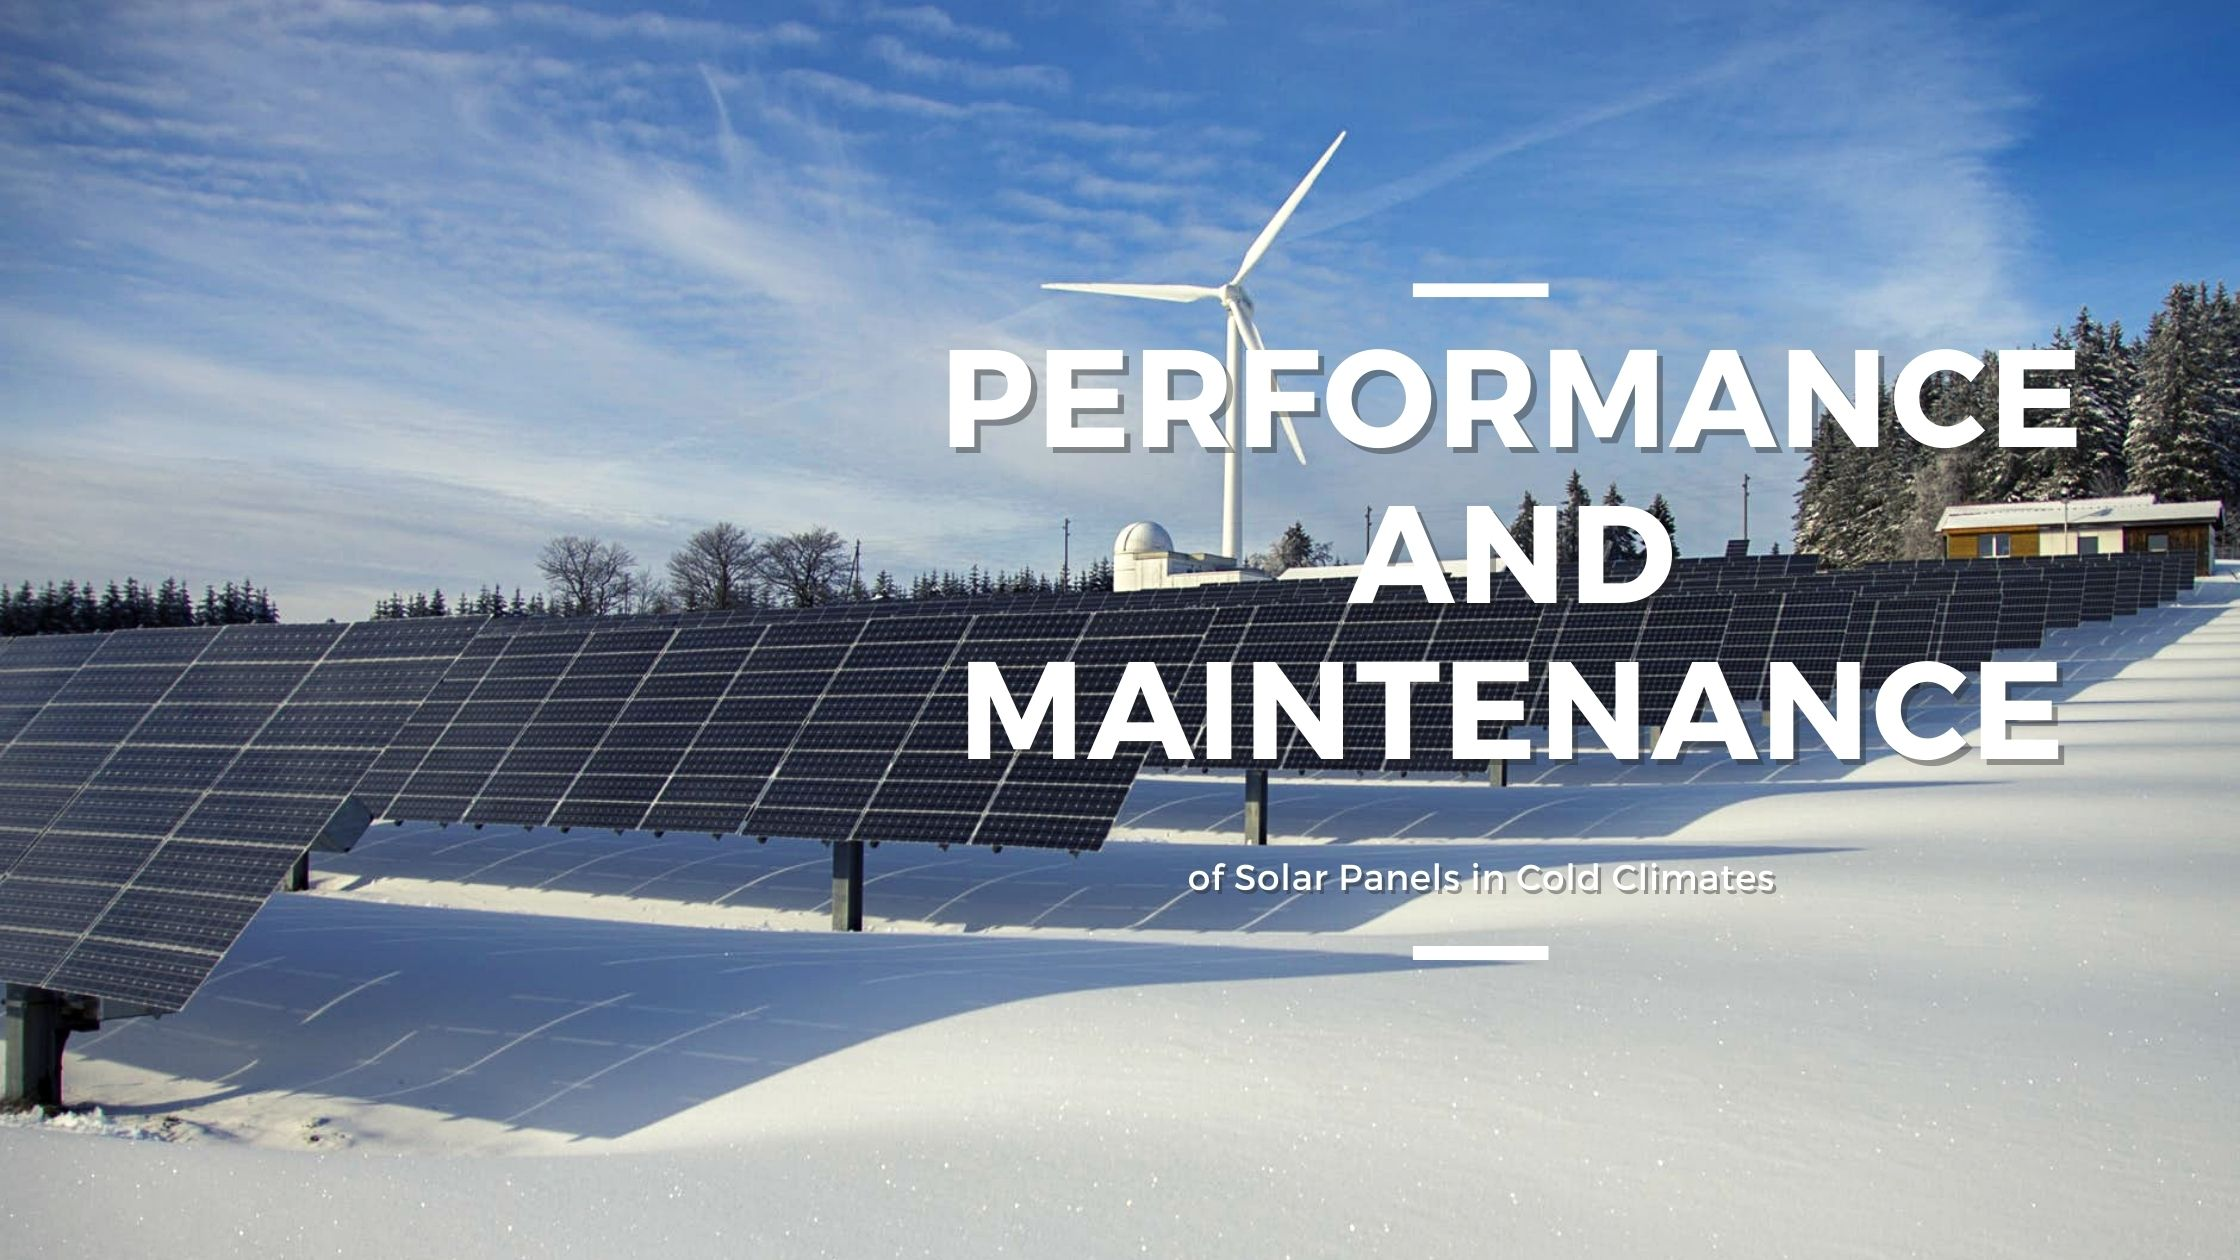 Performance and Maintenance of Solar Panels in Cold Climates